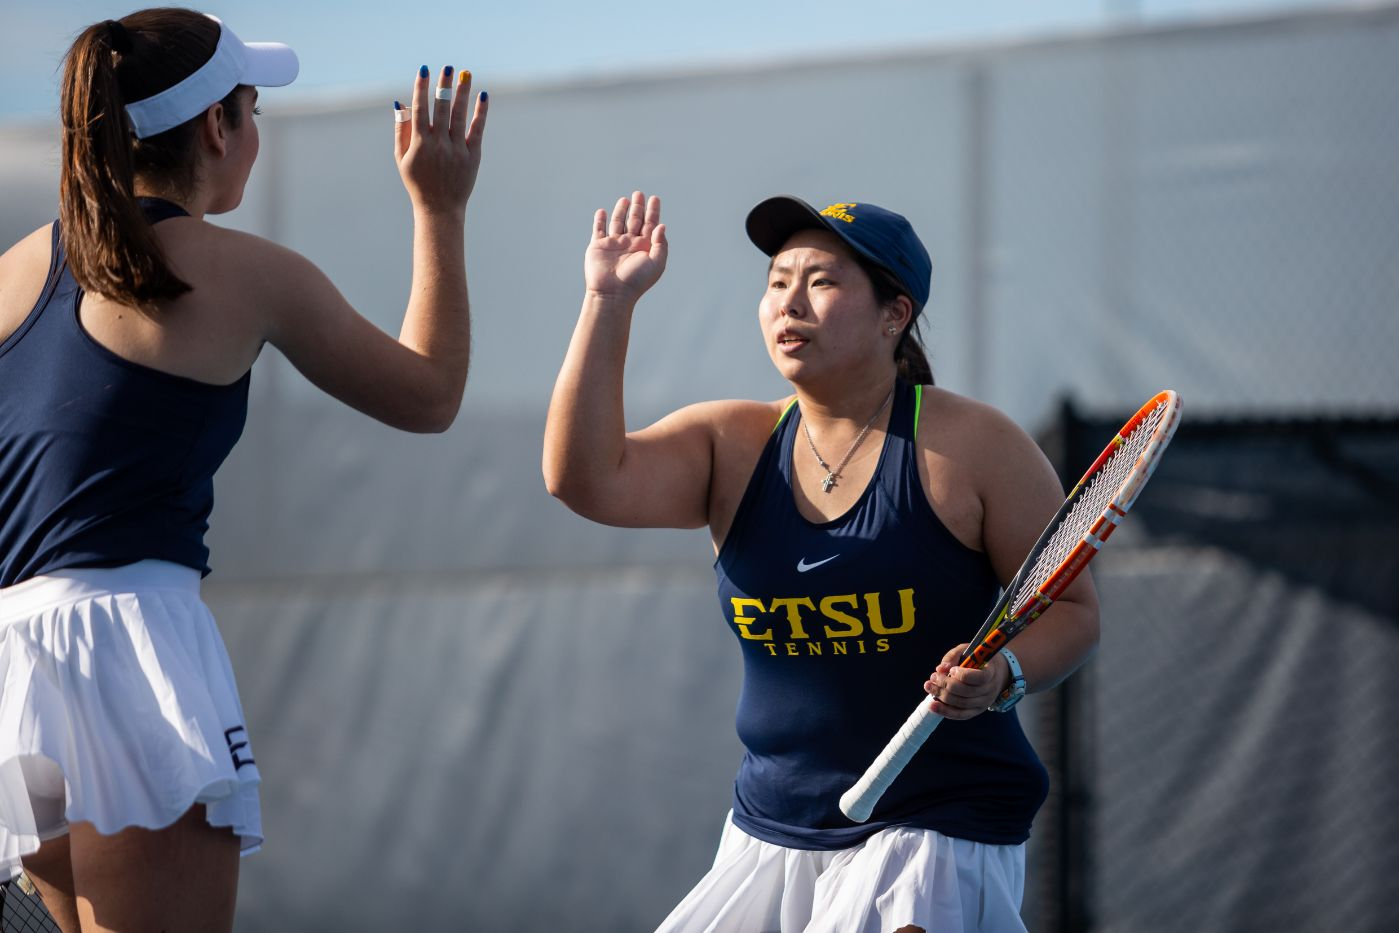 ETSU cruises past LMU 7-0 in midweek match